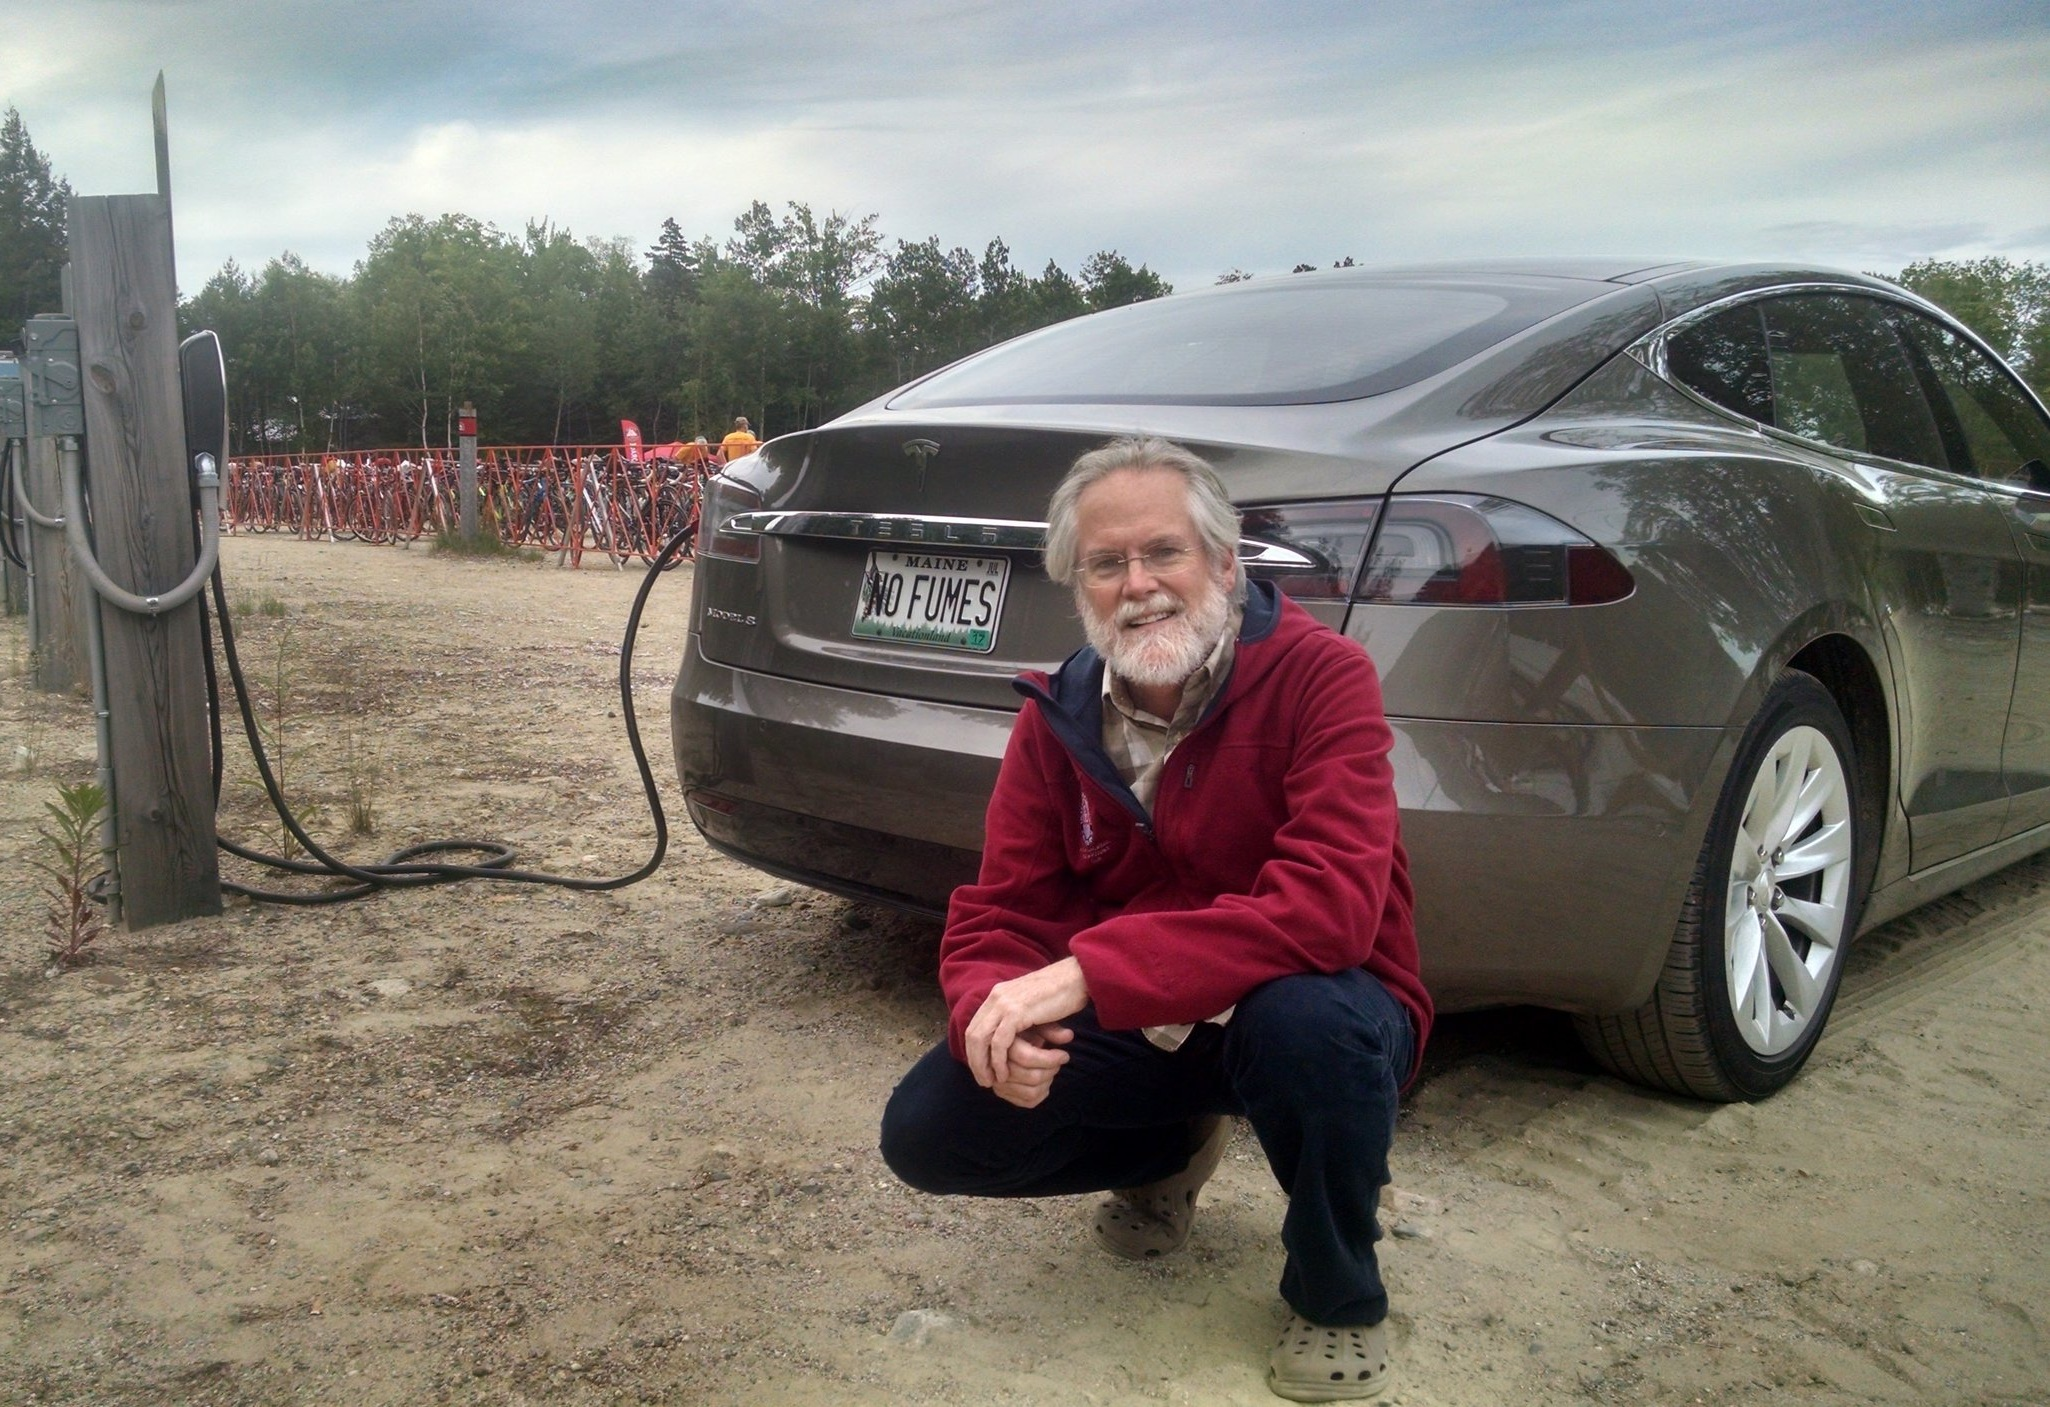 Scott Cowger charges his Tesla Model S at Sunday River in Newry where he was attending the Trek Across Maine. Sunday River offers three Tesla Level 2 chargers and one wall outlet available for public use.